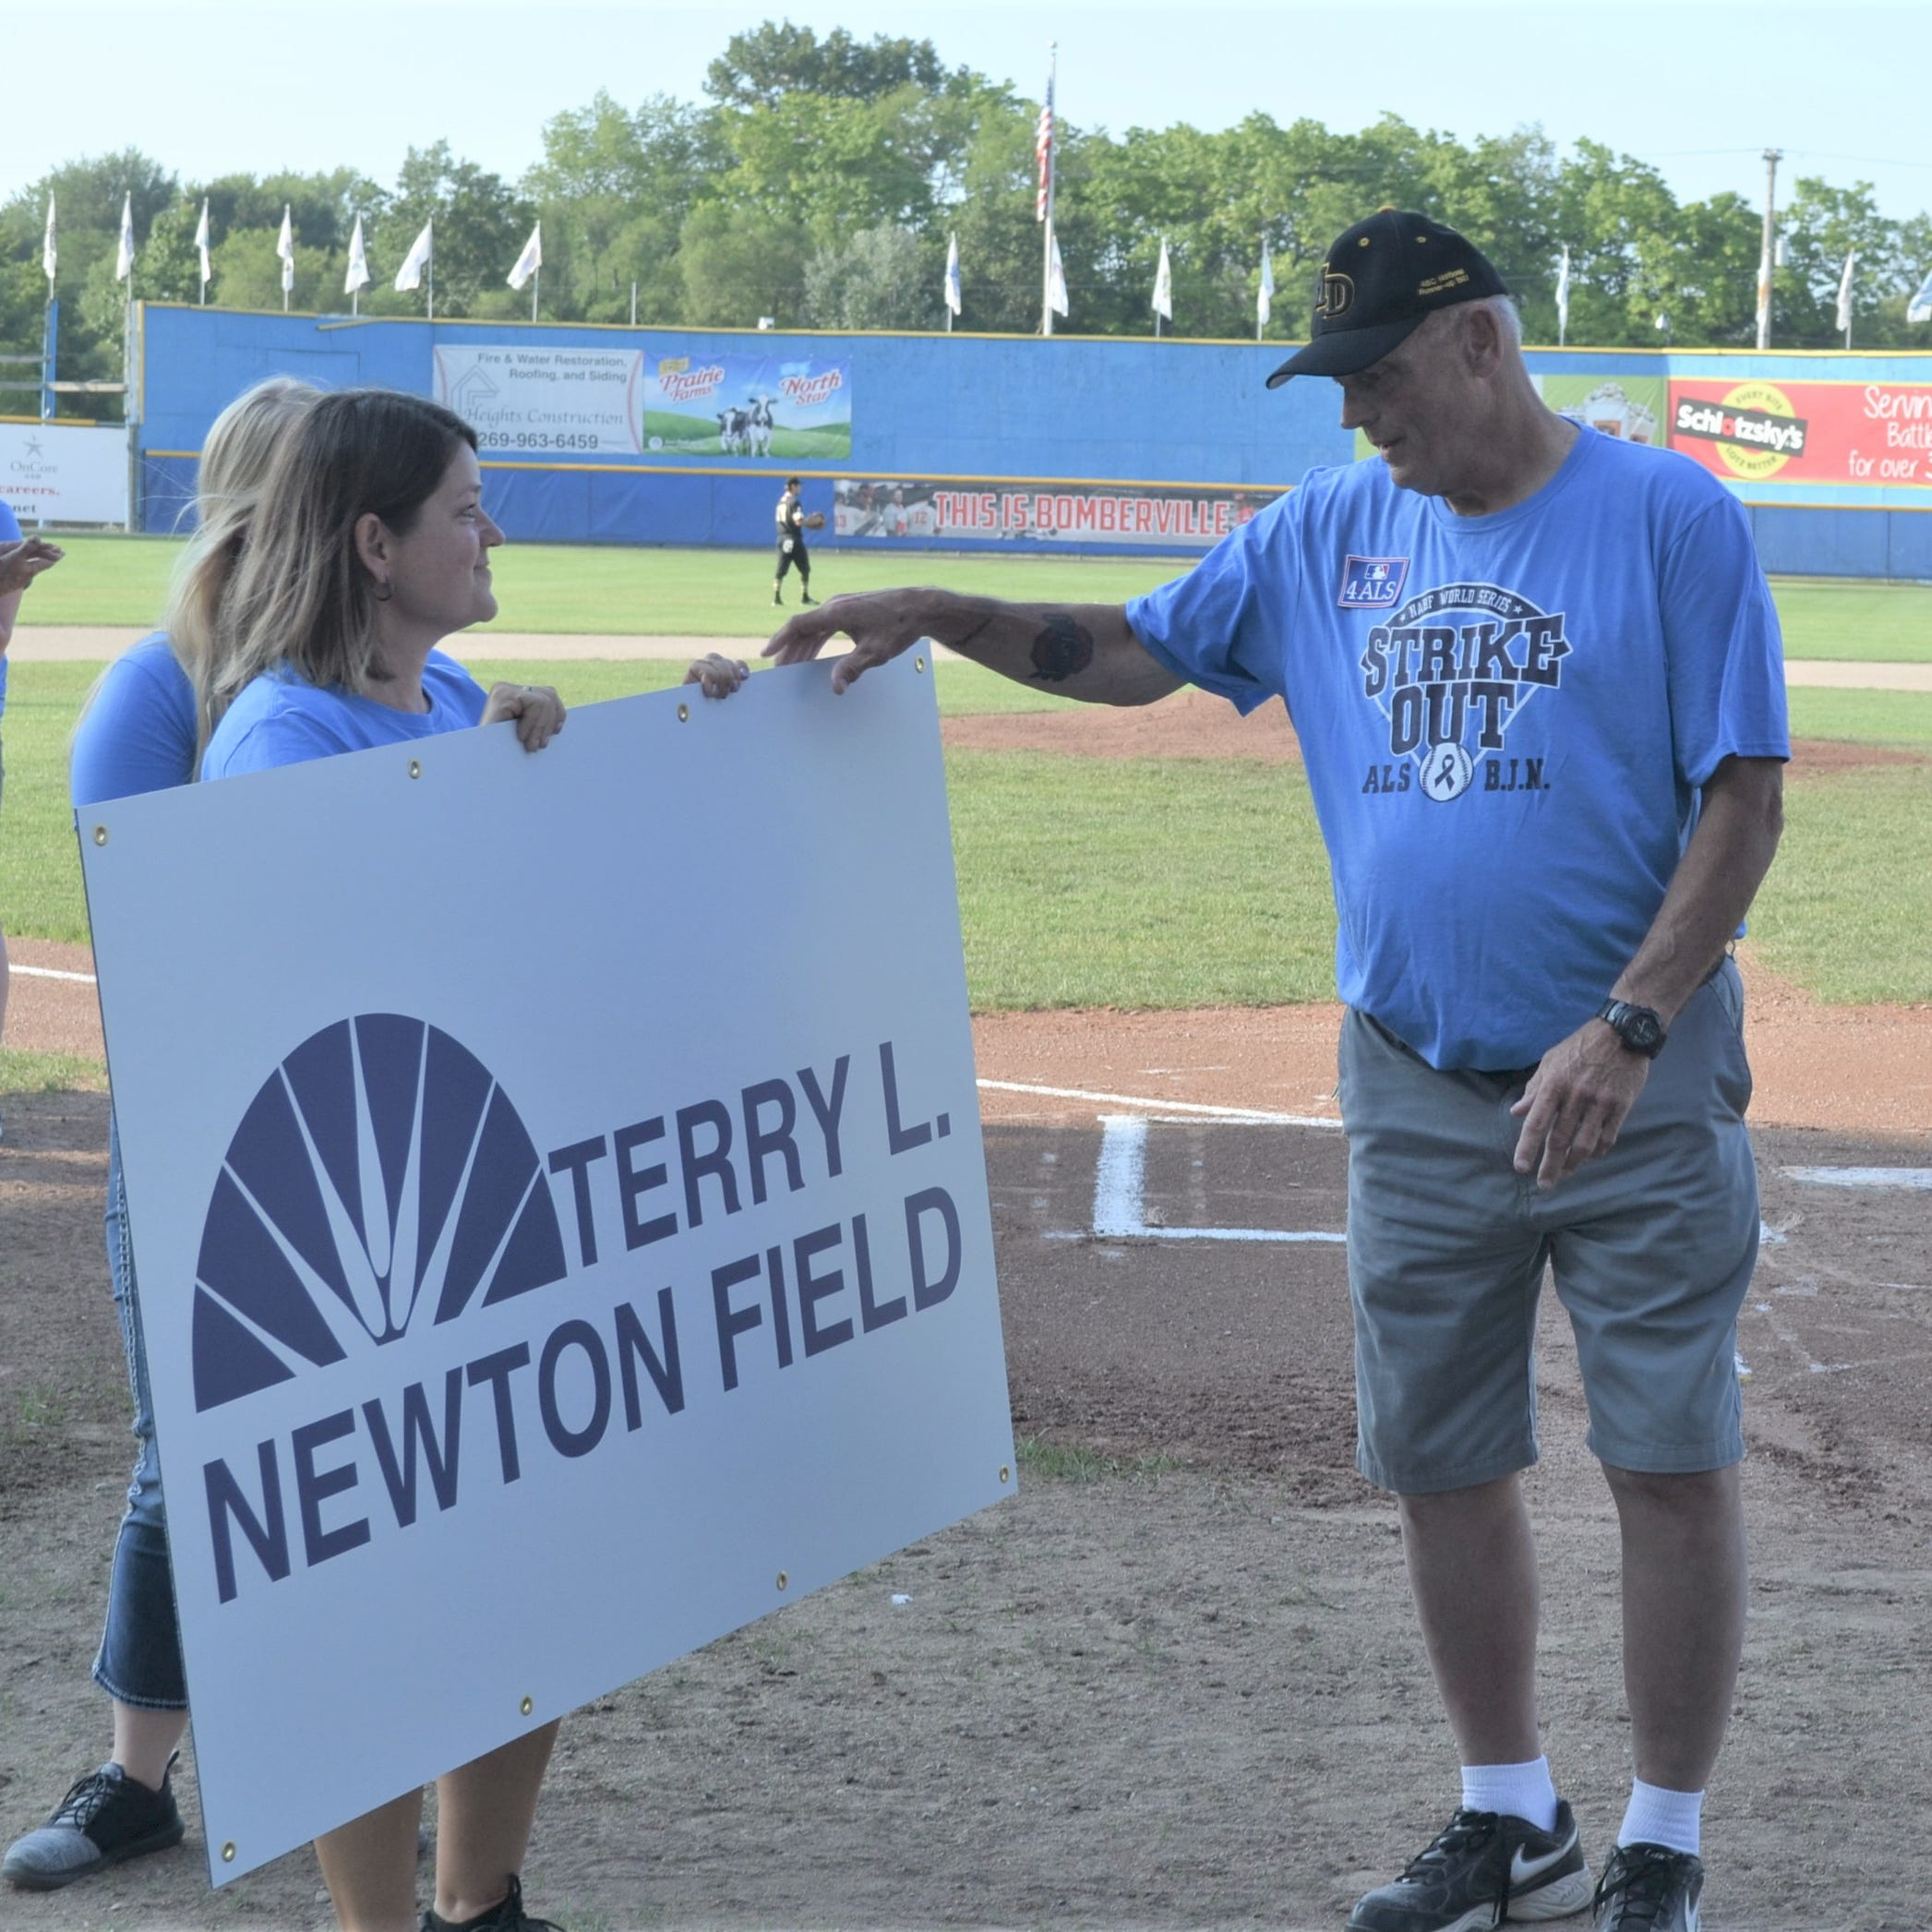 Newton humbled by latest addition to Bailey Park - Terry L. Newton Field